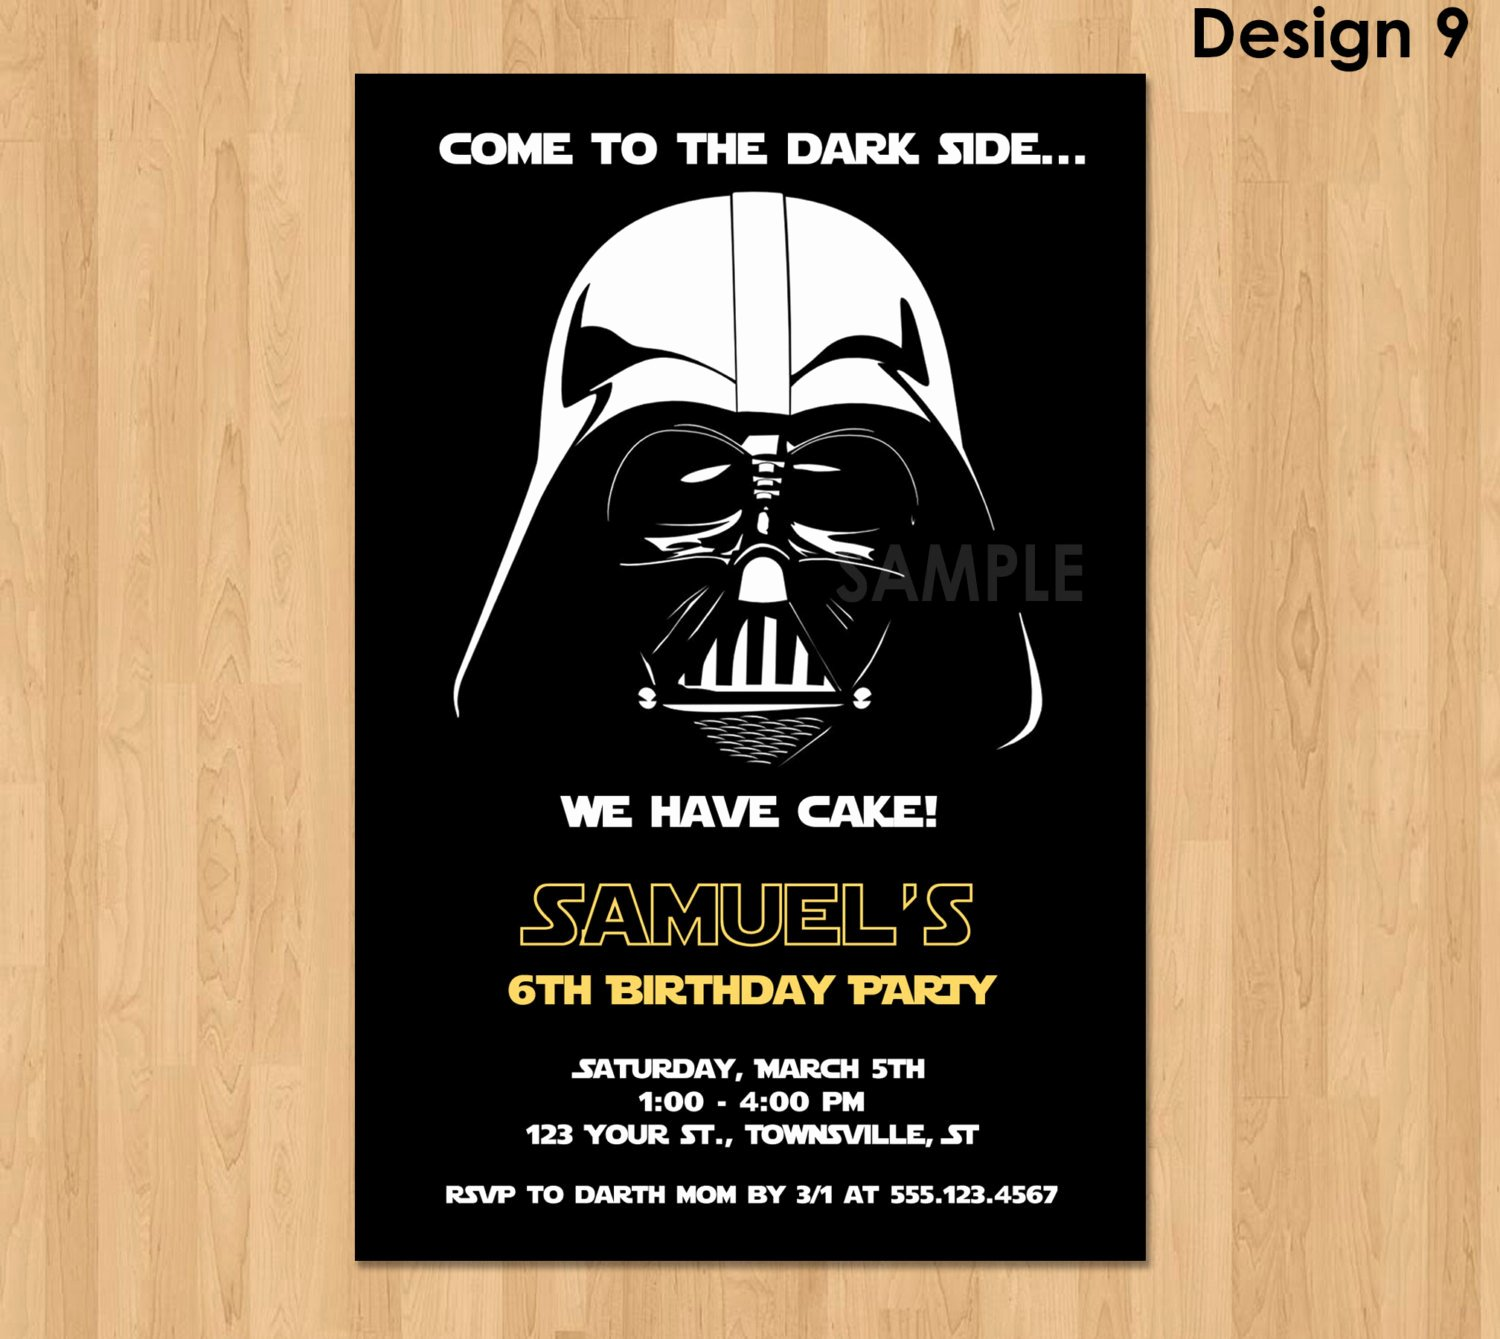 Star Wars Birthday Invitation Beautiful Darth Vader Invitation Star Wars Birthday Invitation Star